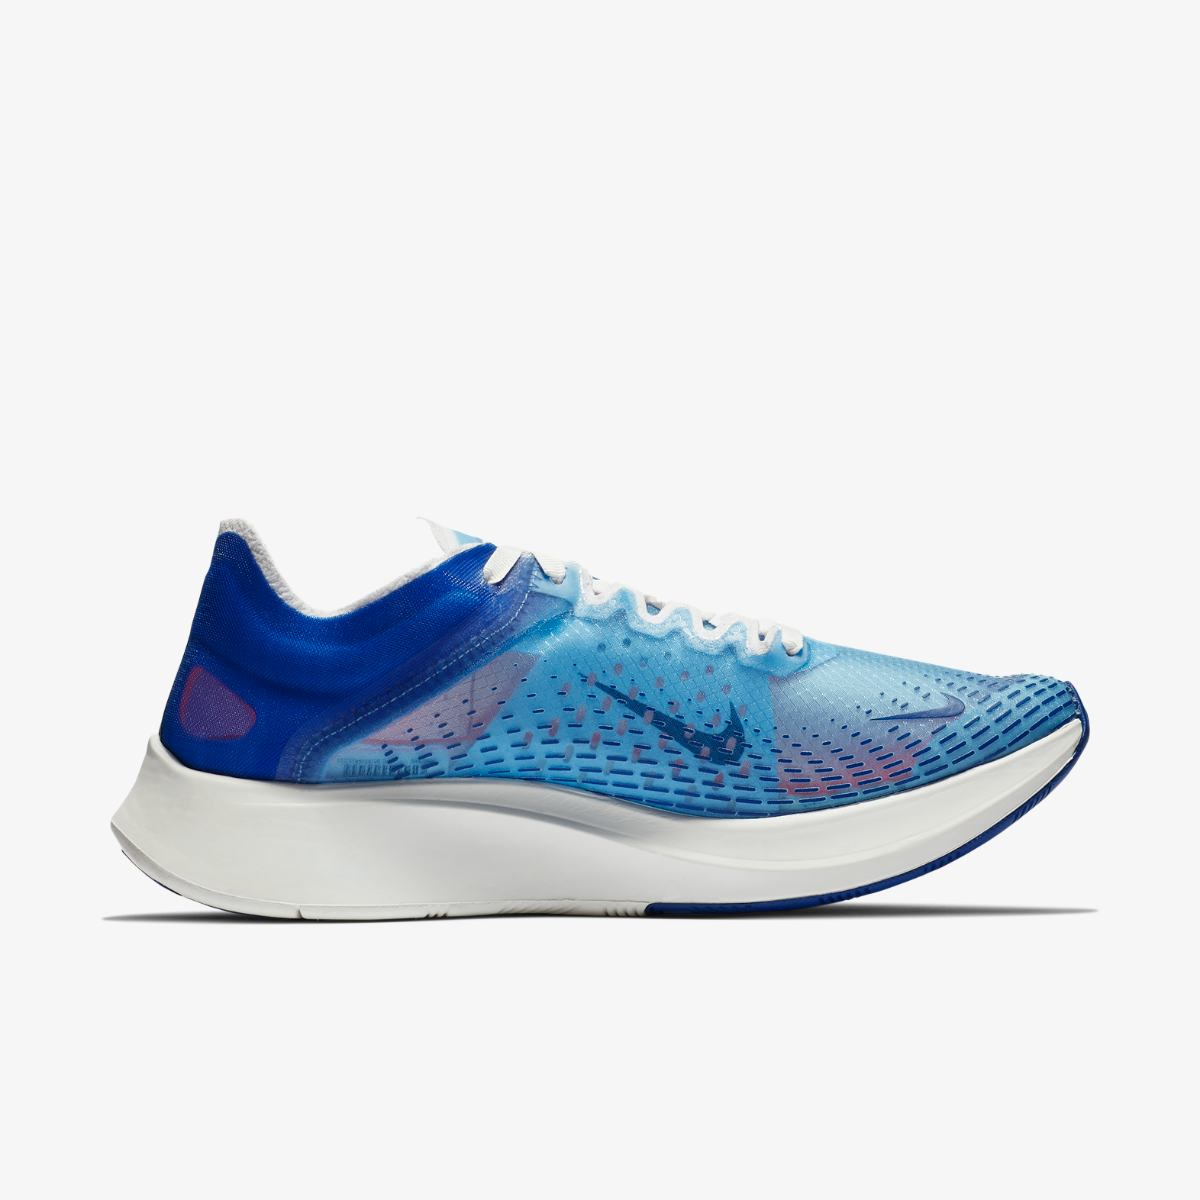 Кроссовки для бега Nike WMNS ZOOM FLY SP FAST